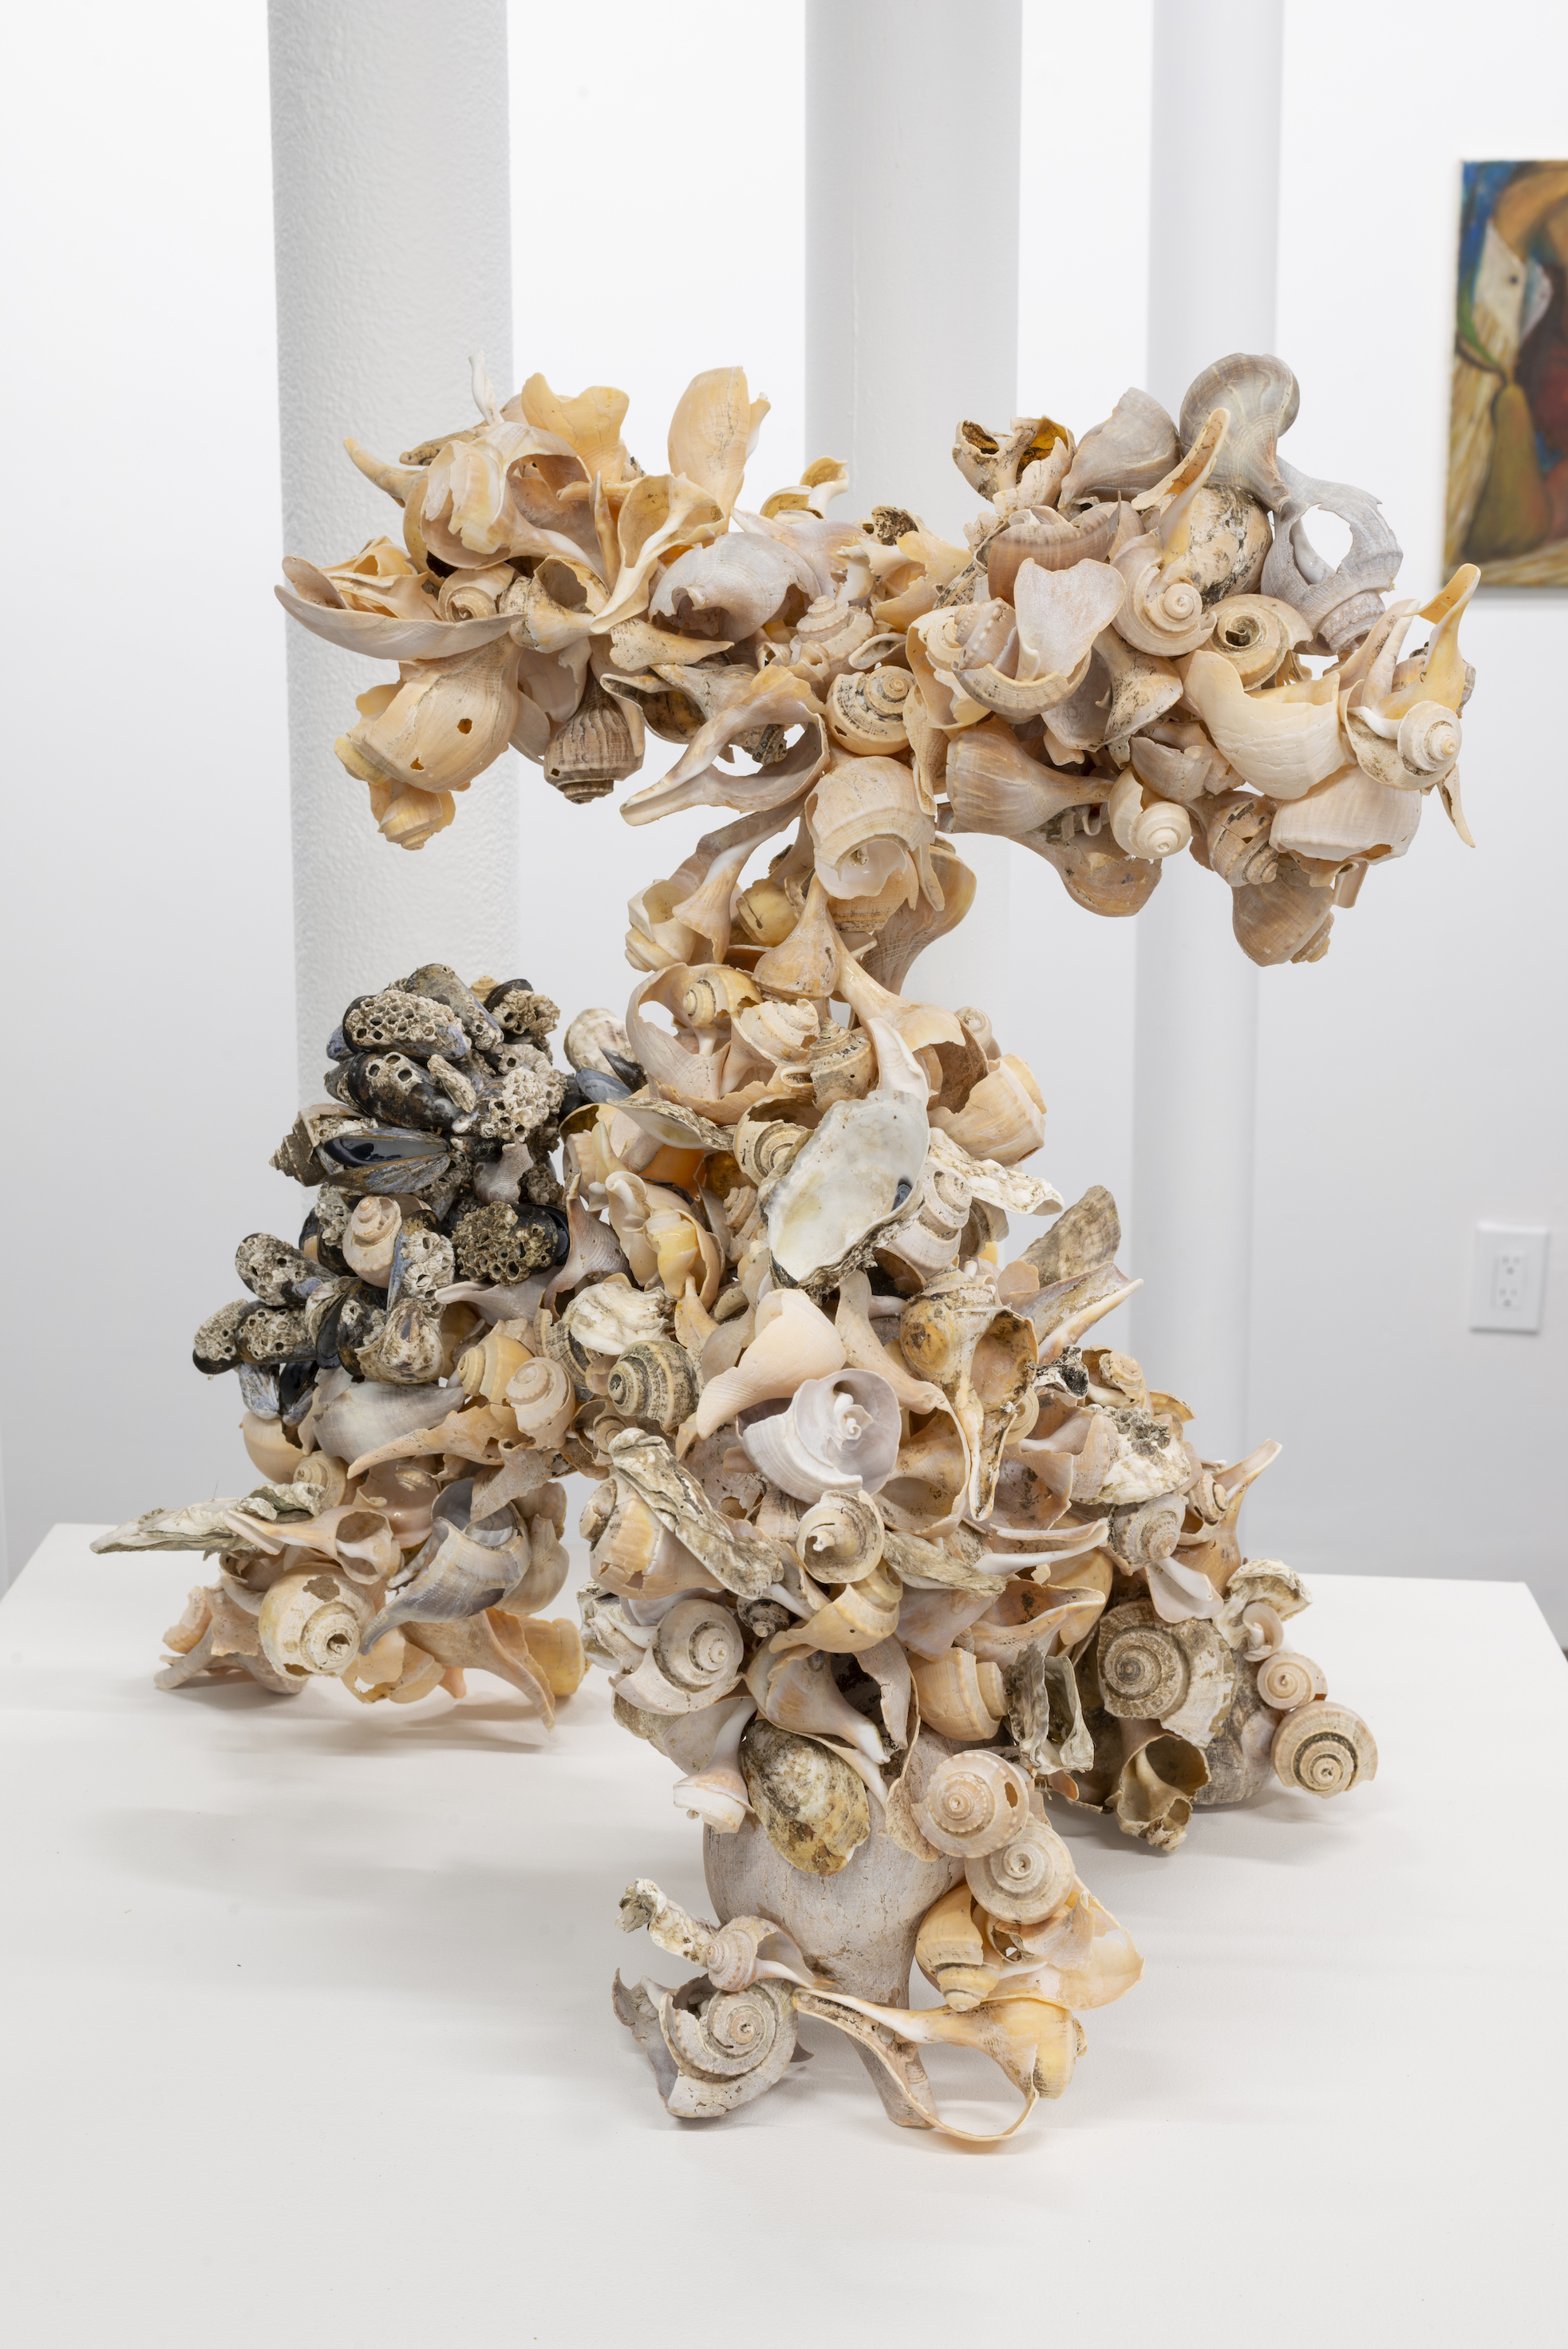 Mitchell Algus.  The Anti-Sea No. 22 , 2018, channeled whelk (Busycotypus canaliculatus), blue mussel (Mytilus edulis), eastern oyster (Crassostrea virginica), Atlantic acorn barnacle (Semibalanus banalnoides), epoxy, collected Bayville, NY 12 x 15 x 22 inches